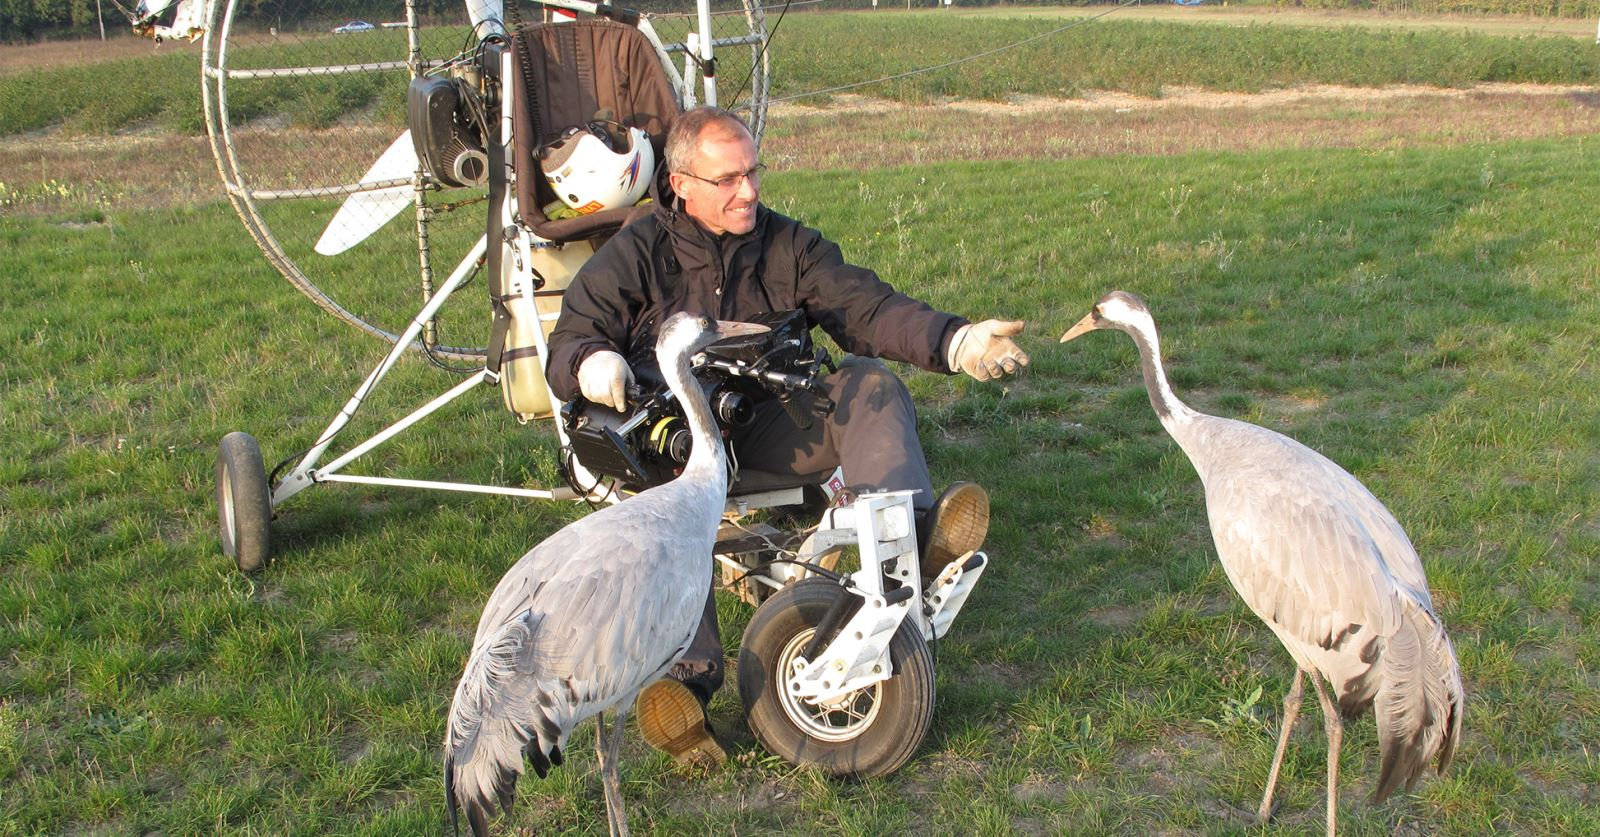 Microlight expert GTC member Richard Cook, who was awarded a GTC Award for his work on Earthflight, makes friends with t